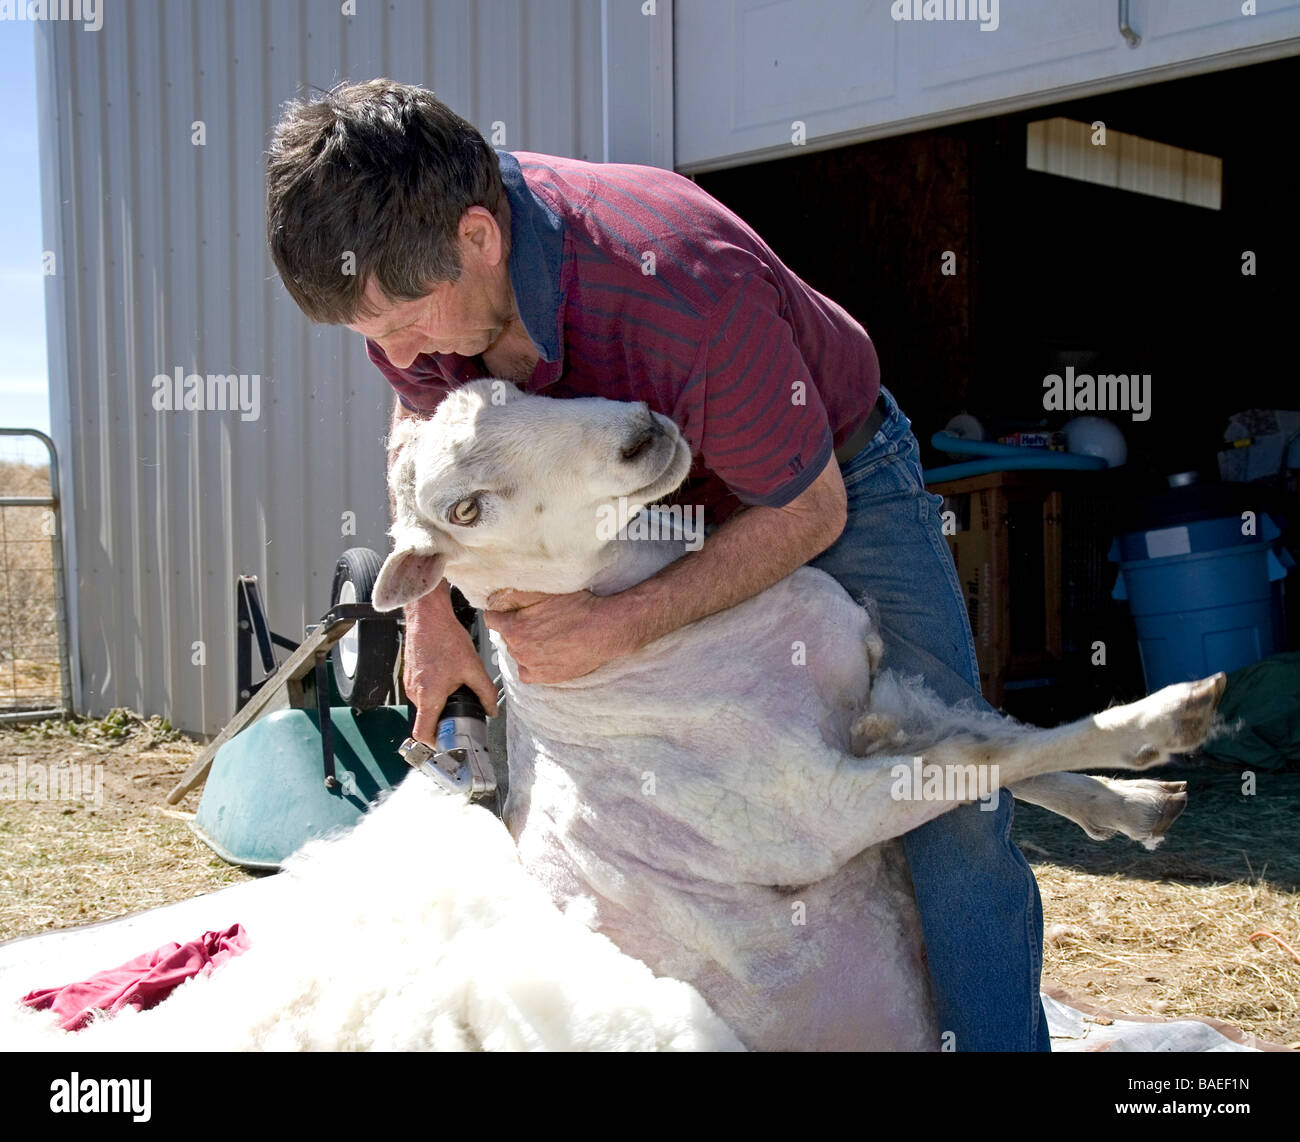 USA OREGON A sheep shearer shears the wool from a large sheep on a farm near Bend Oregon in the spring. sheep shearing. - Stock Image